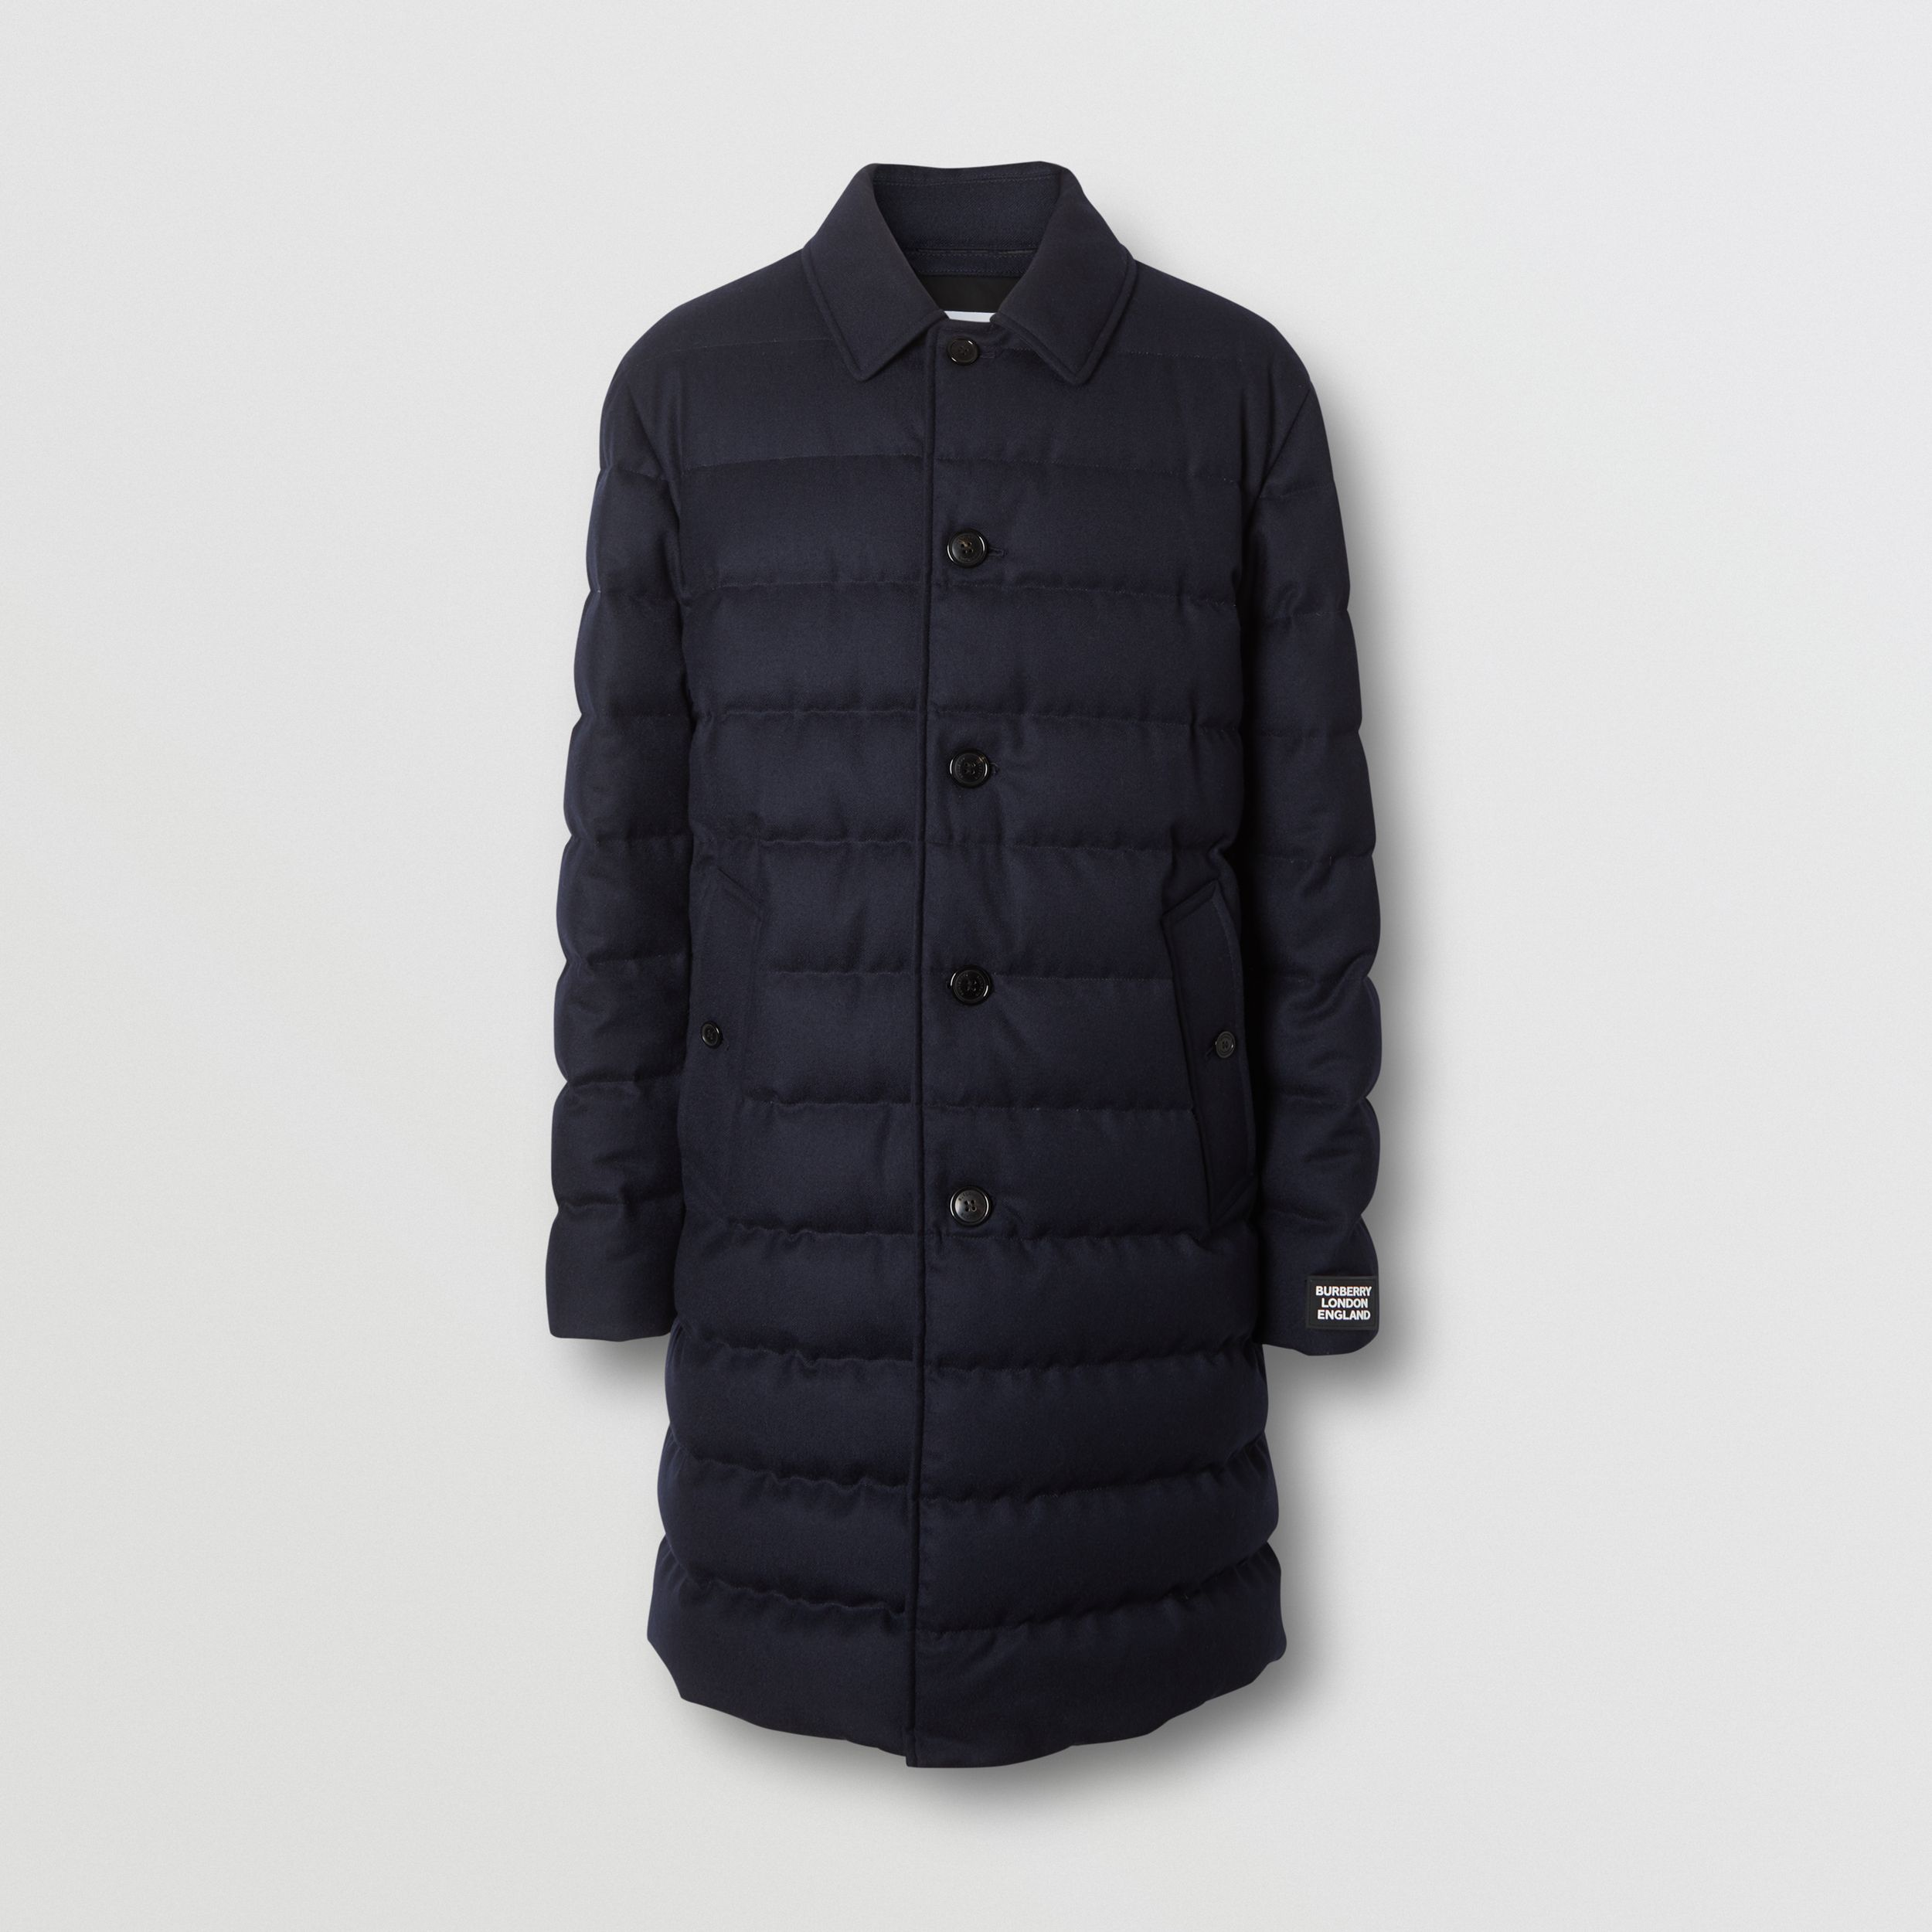 Wool Puffer Coat in Navy - Men | Burberry - 4